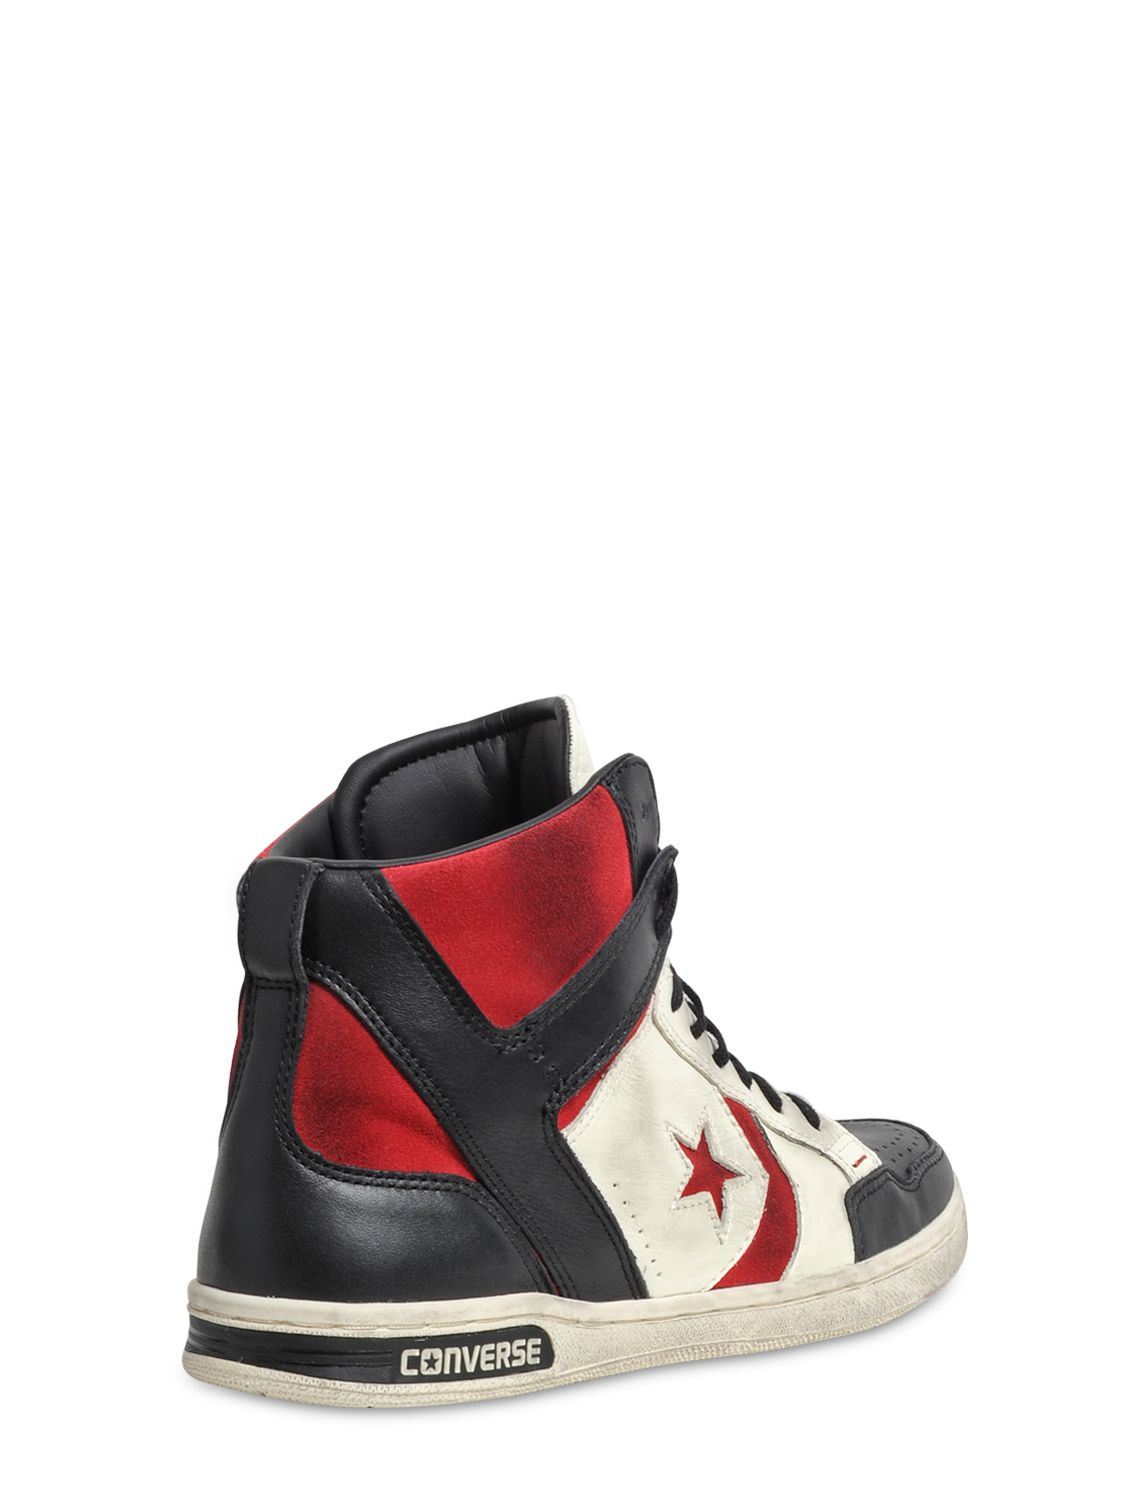 Converse Weapon Leather High Top Sneakers In White For Men